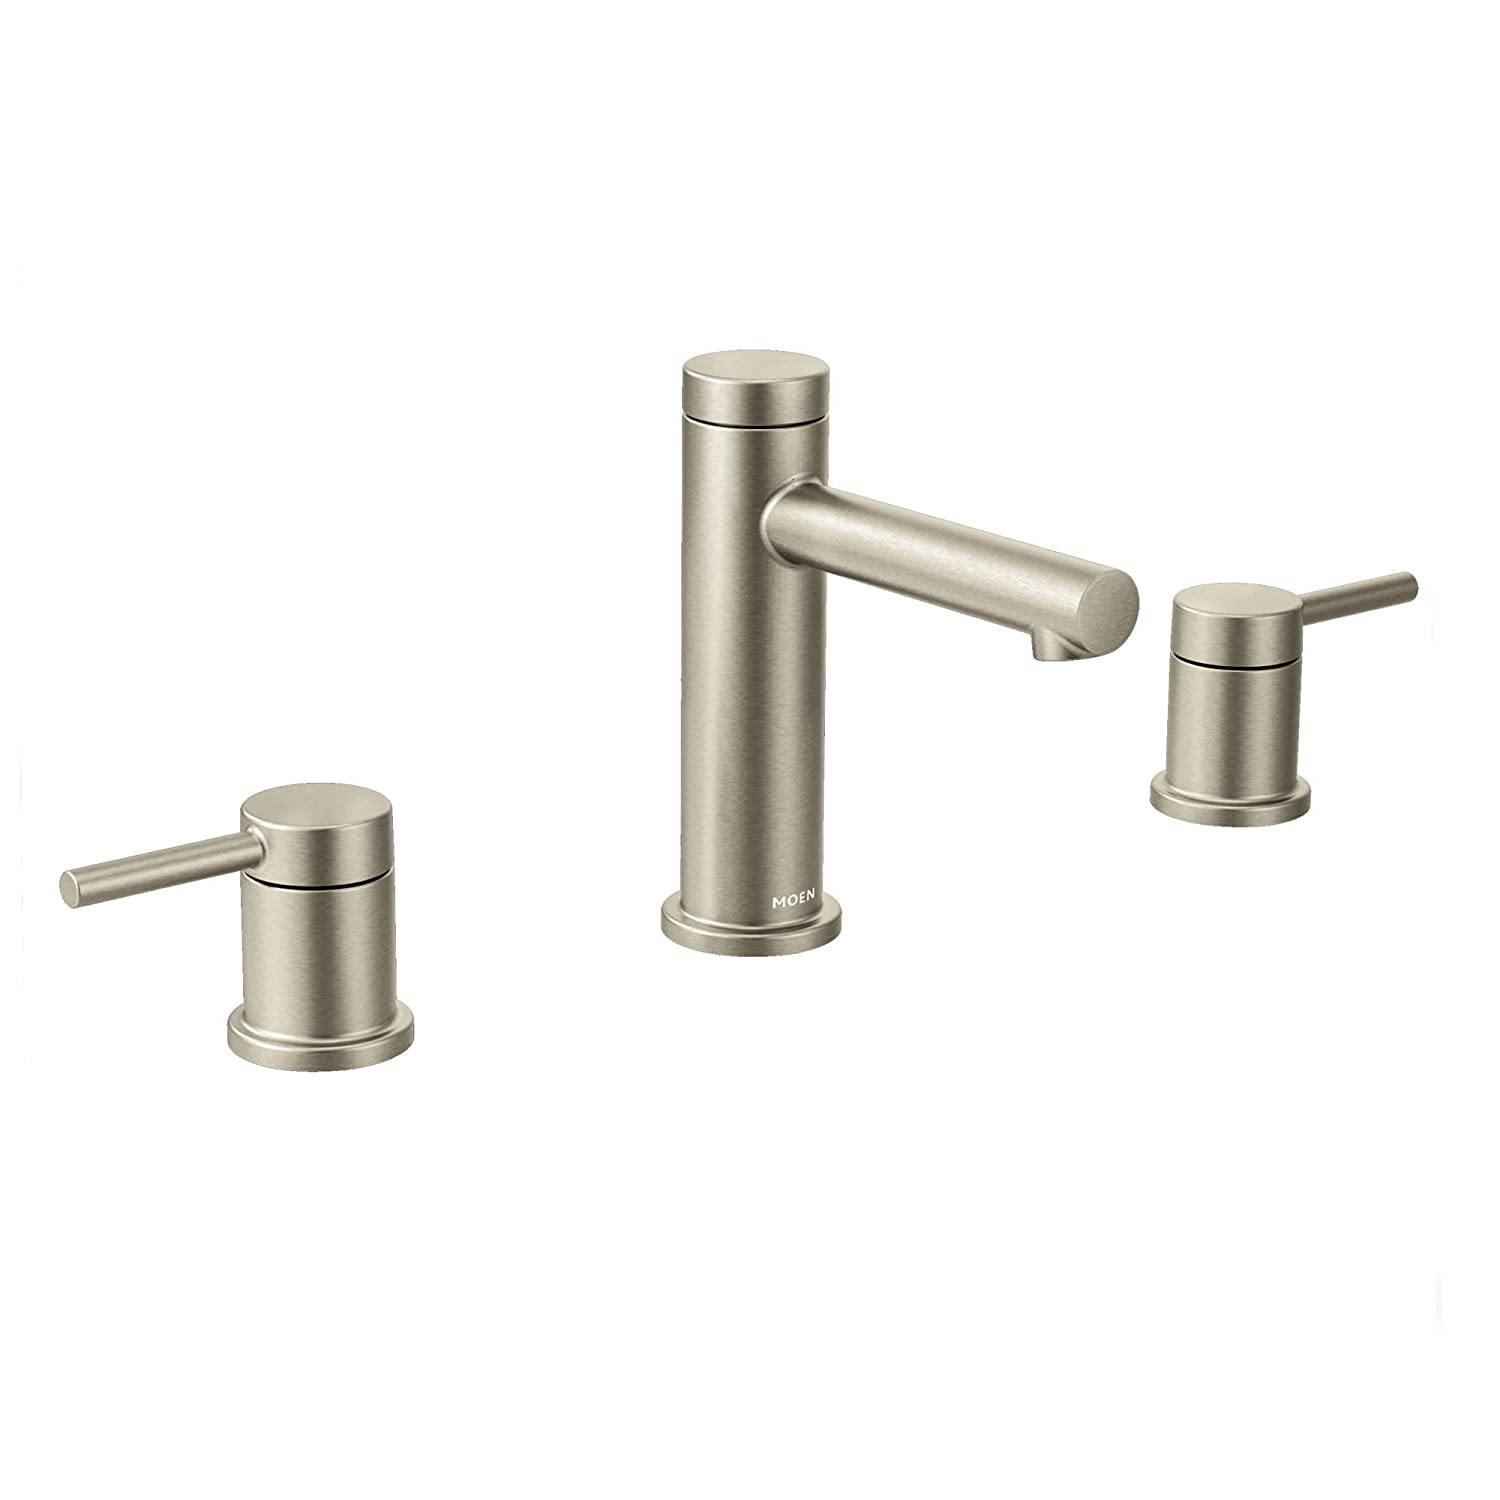 Moen T6193 9000 Align Two Handle High Arc Bathroom Faucet with